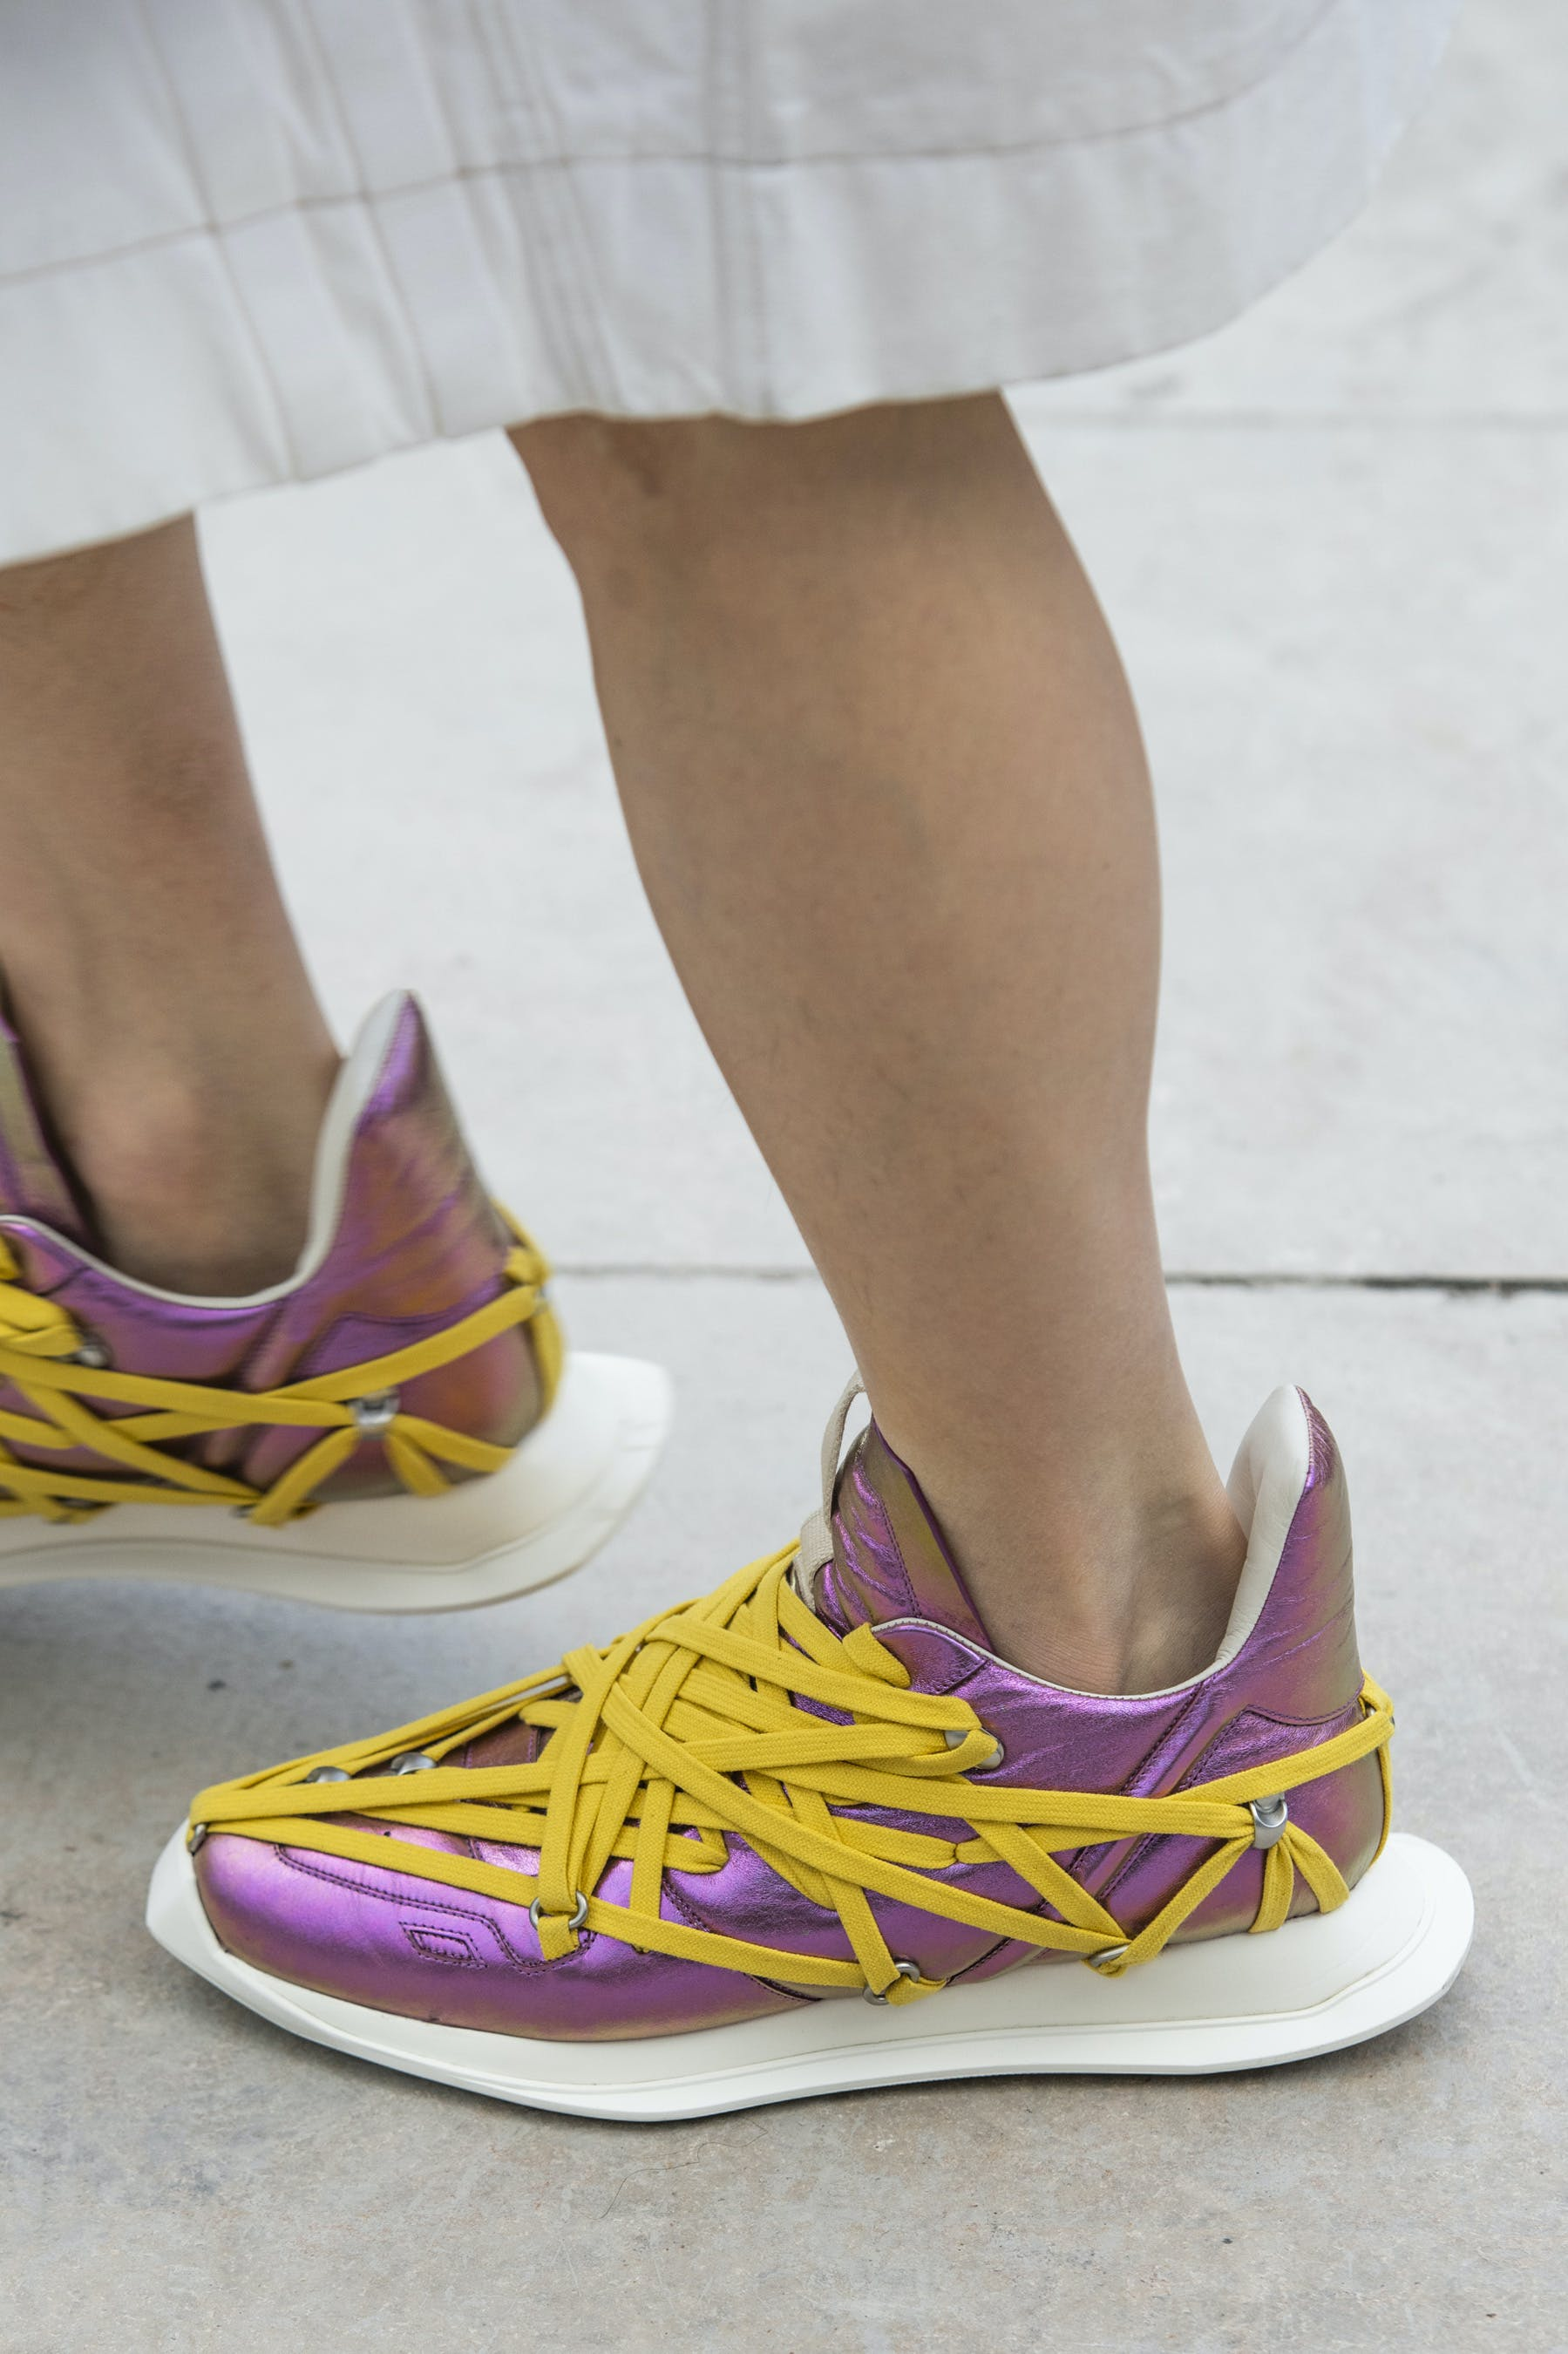 Rick Owens Runway Details Maximal Runner Sneakers In Irise Iridescent Leather With Yellow Mega Lace Detail Mens SS20 Tecautl